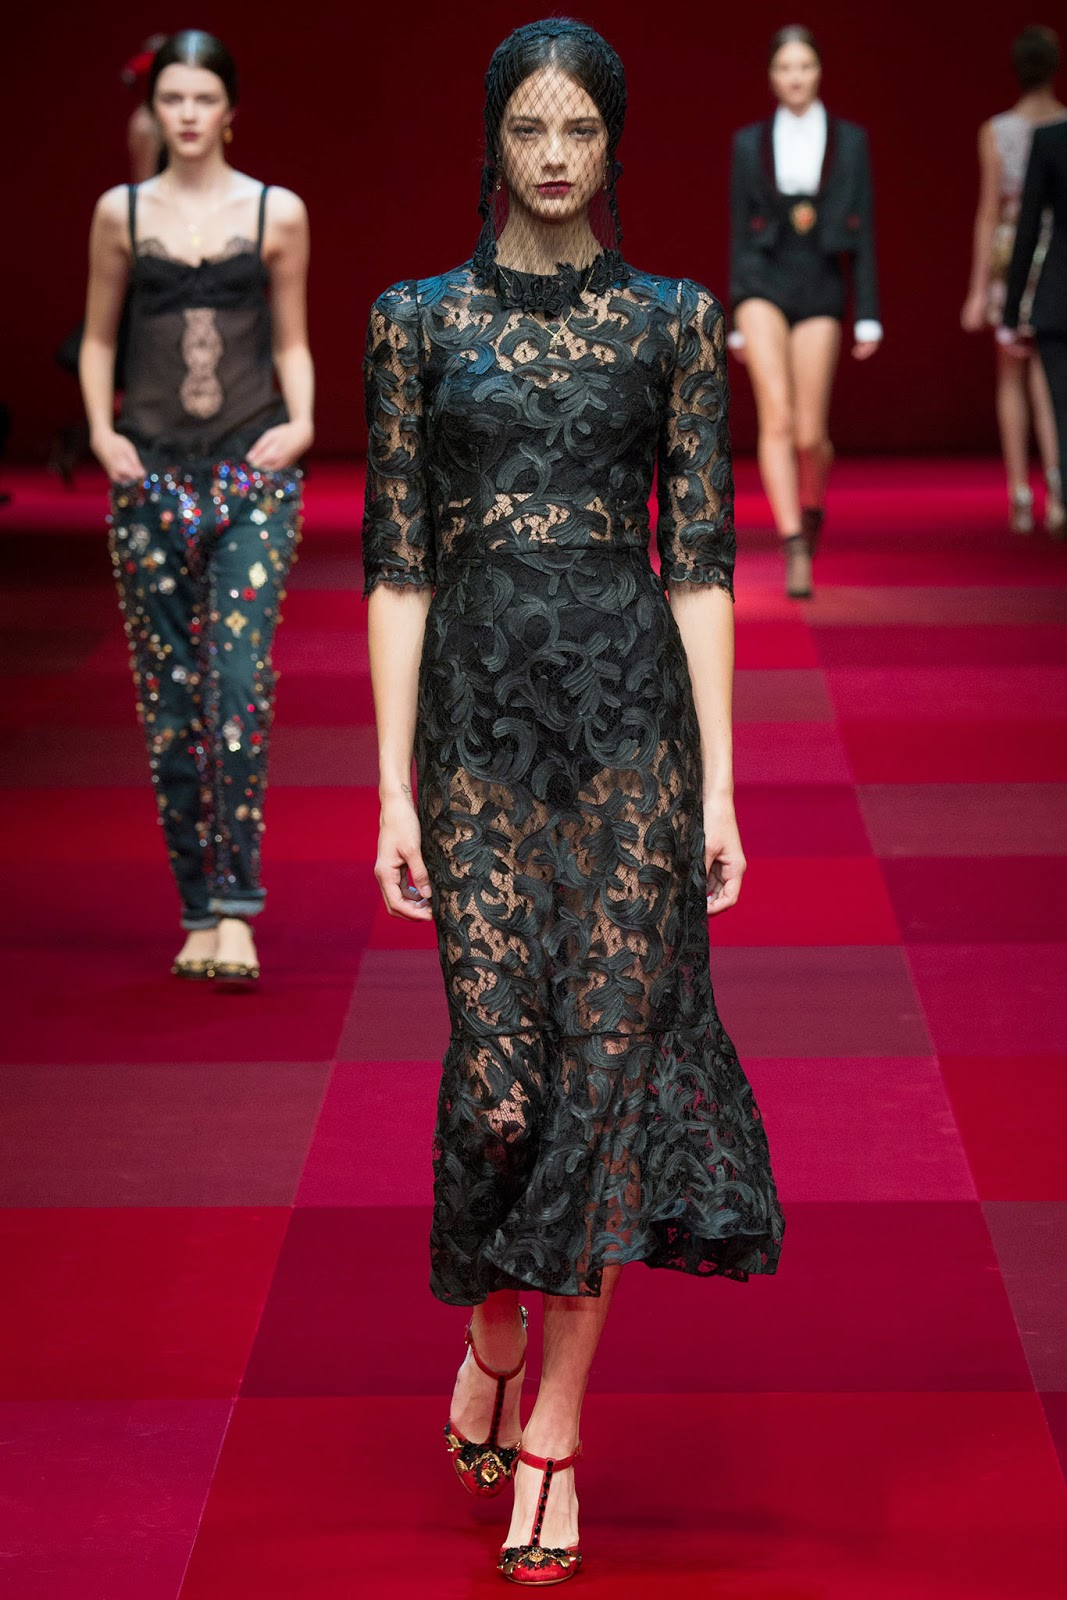 Dolce And Gabbana Dresses Google Search: Niwdenapolis: DOLCE AND GABBANA SPRING-SUMMER 2015 CAMPAIGN